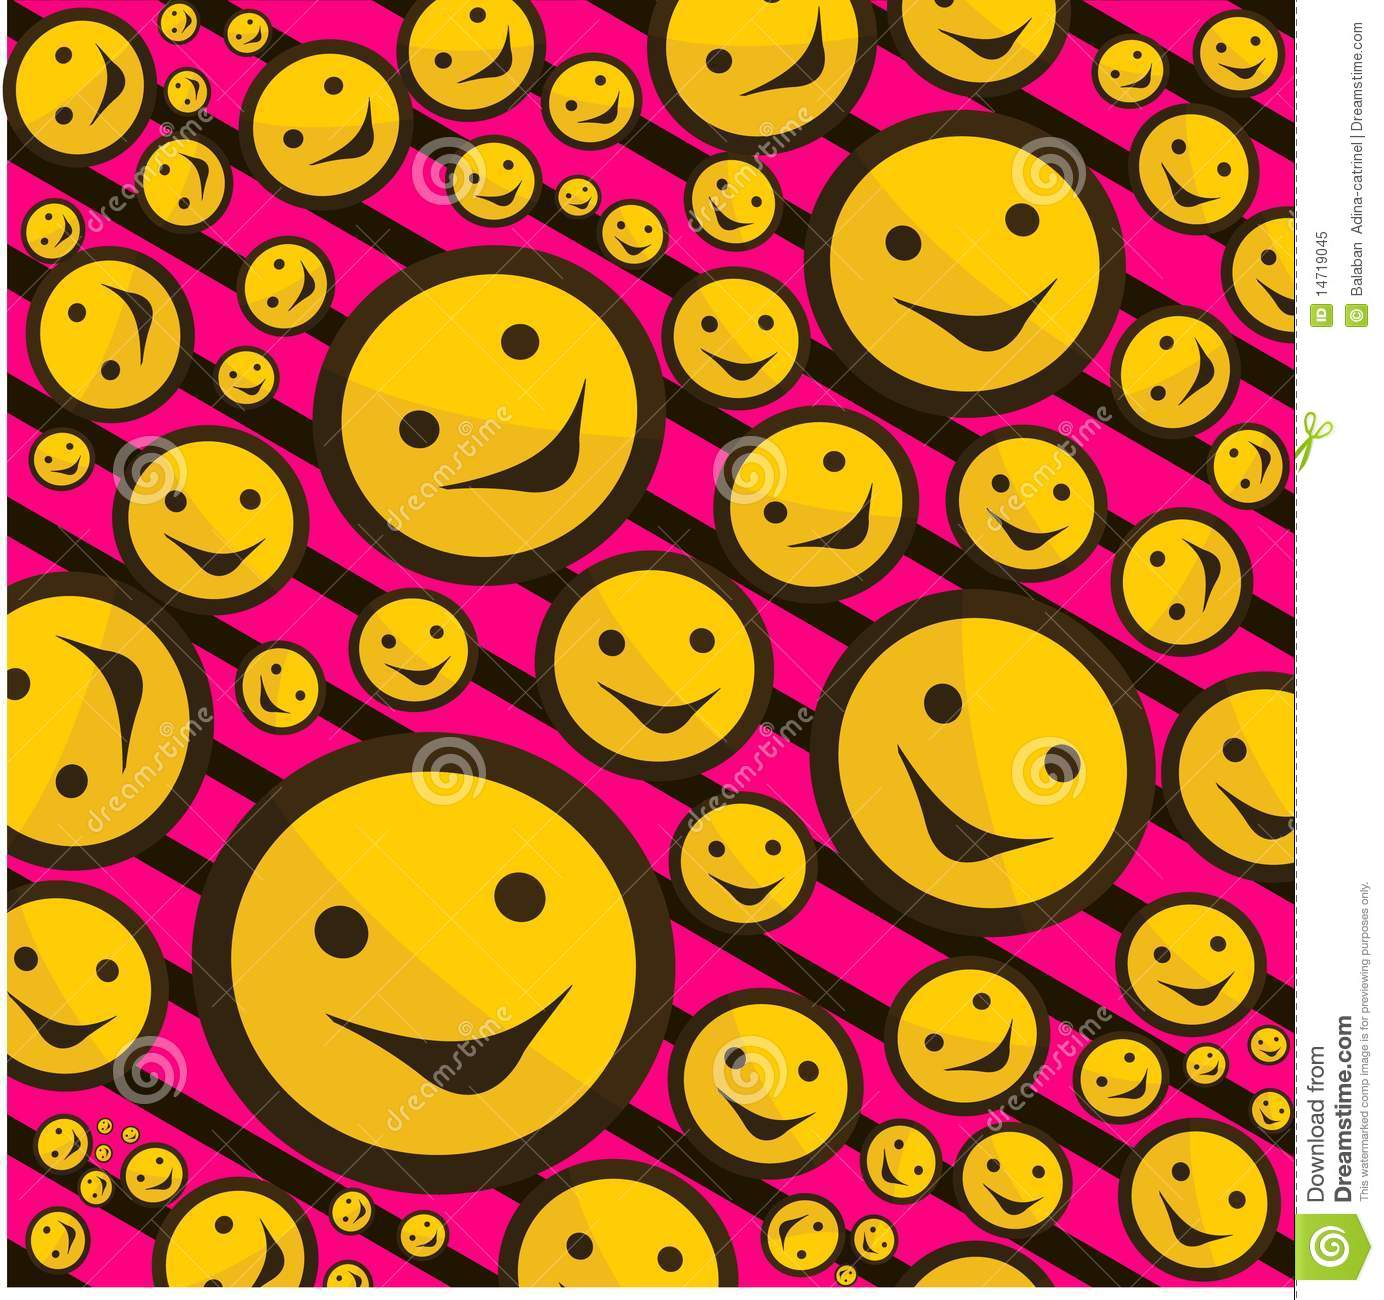 Smiley Signs On Pink Background Stock Vector - Image: 14719045